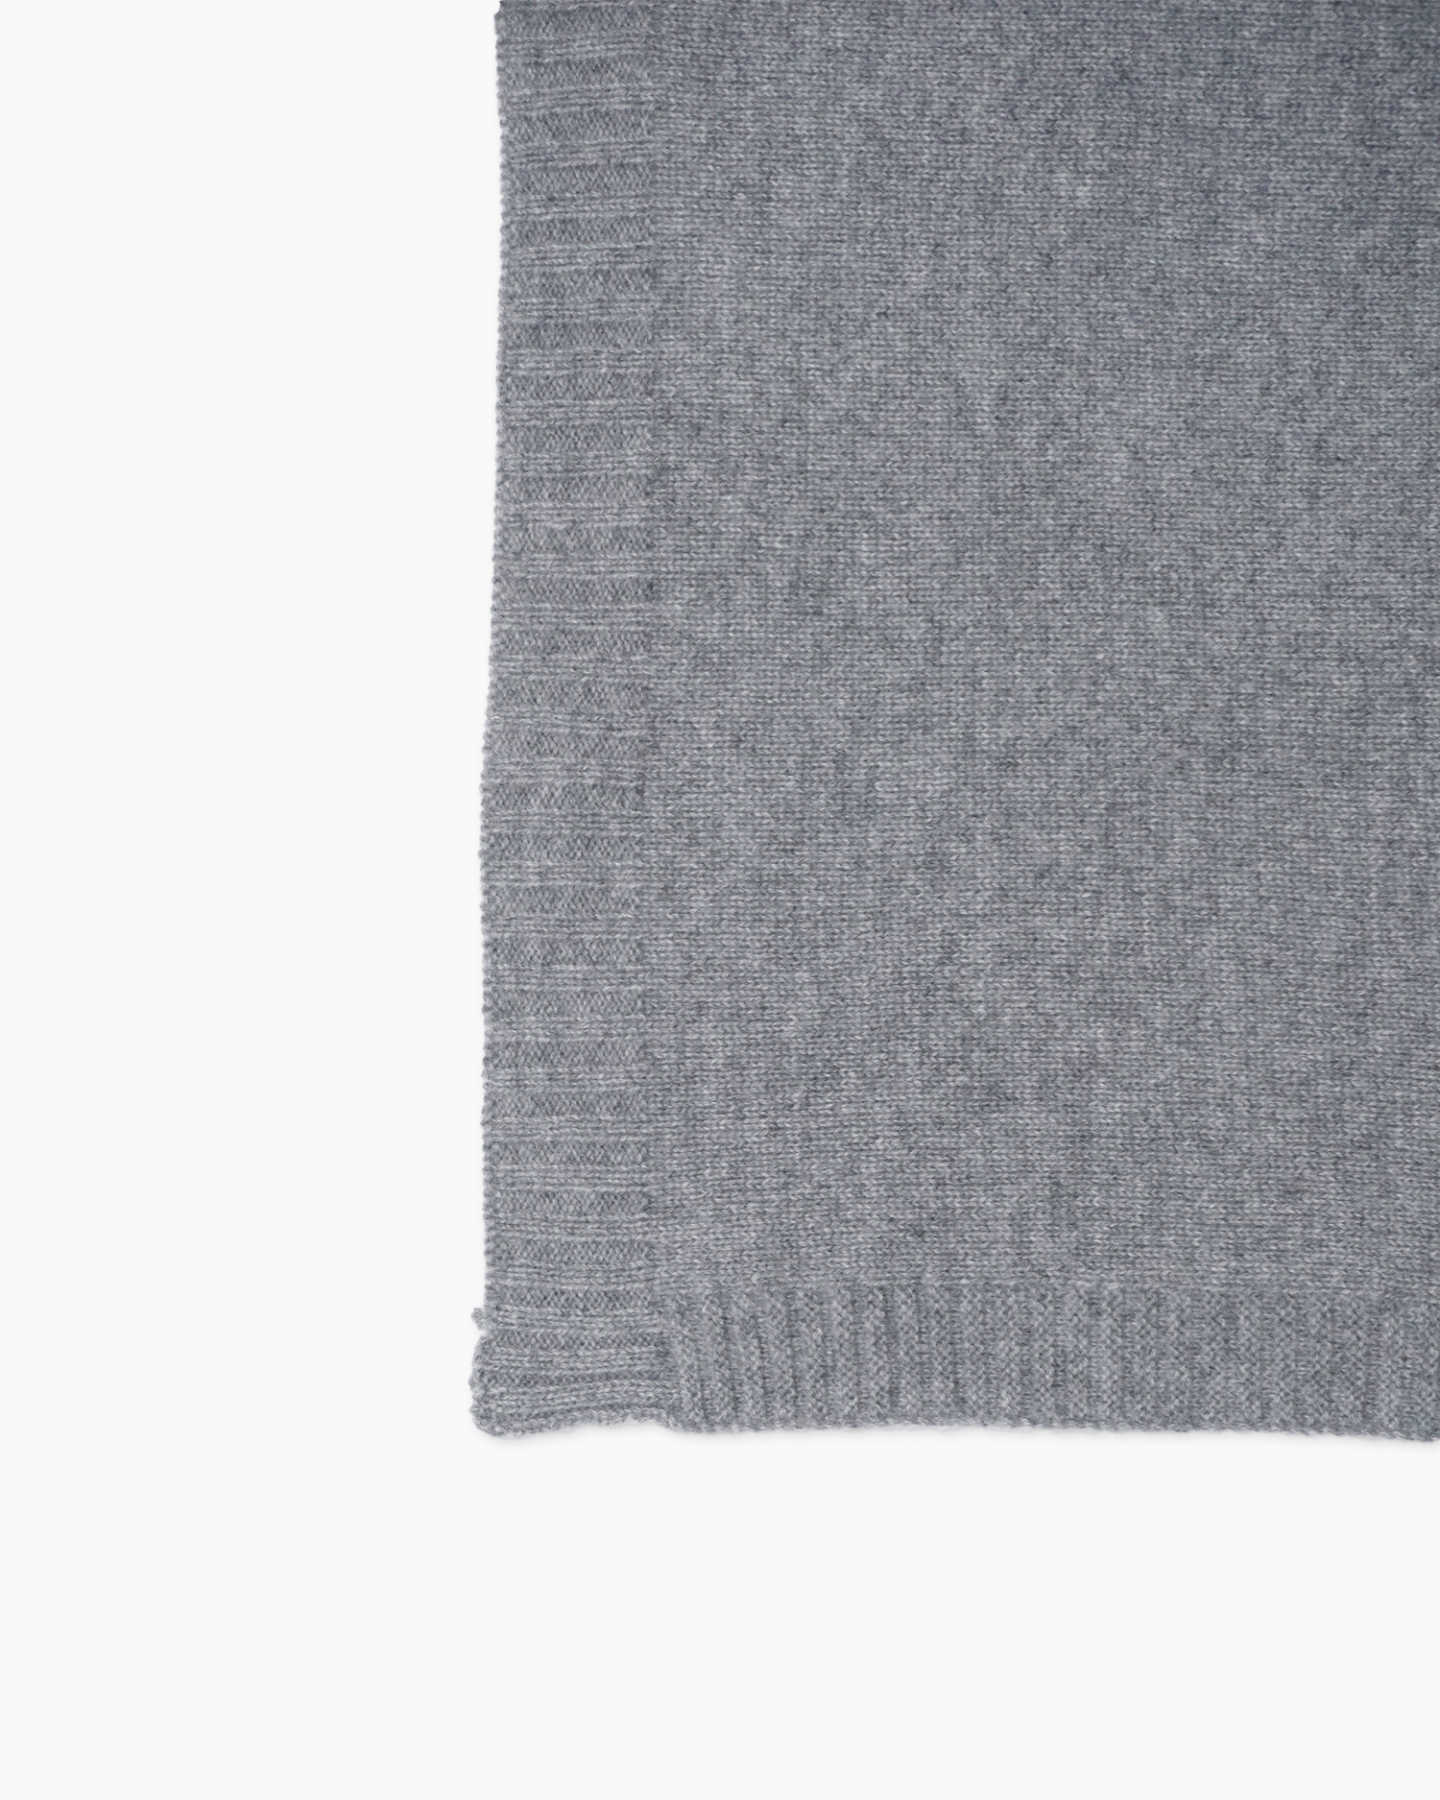 Luxe Knit Cashmere Throw - undefined - 3